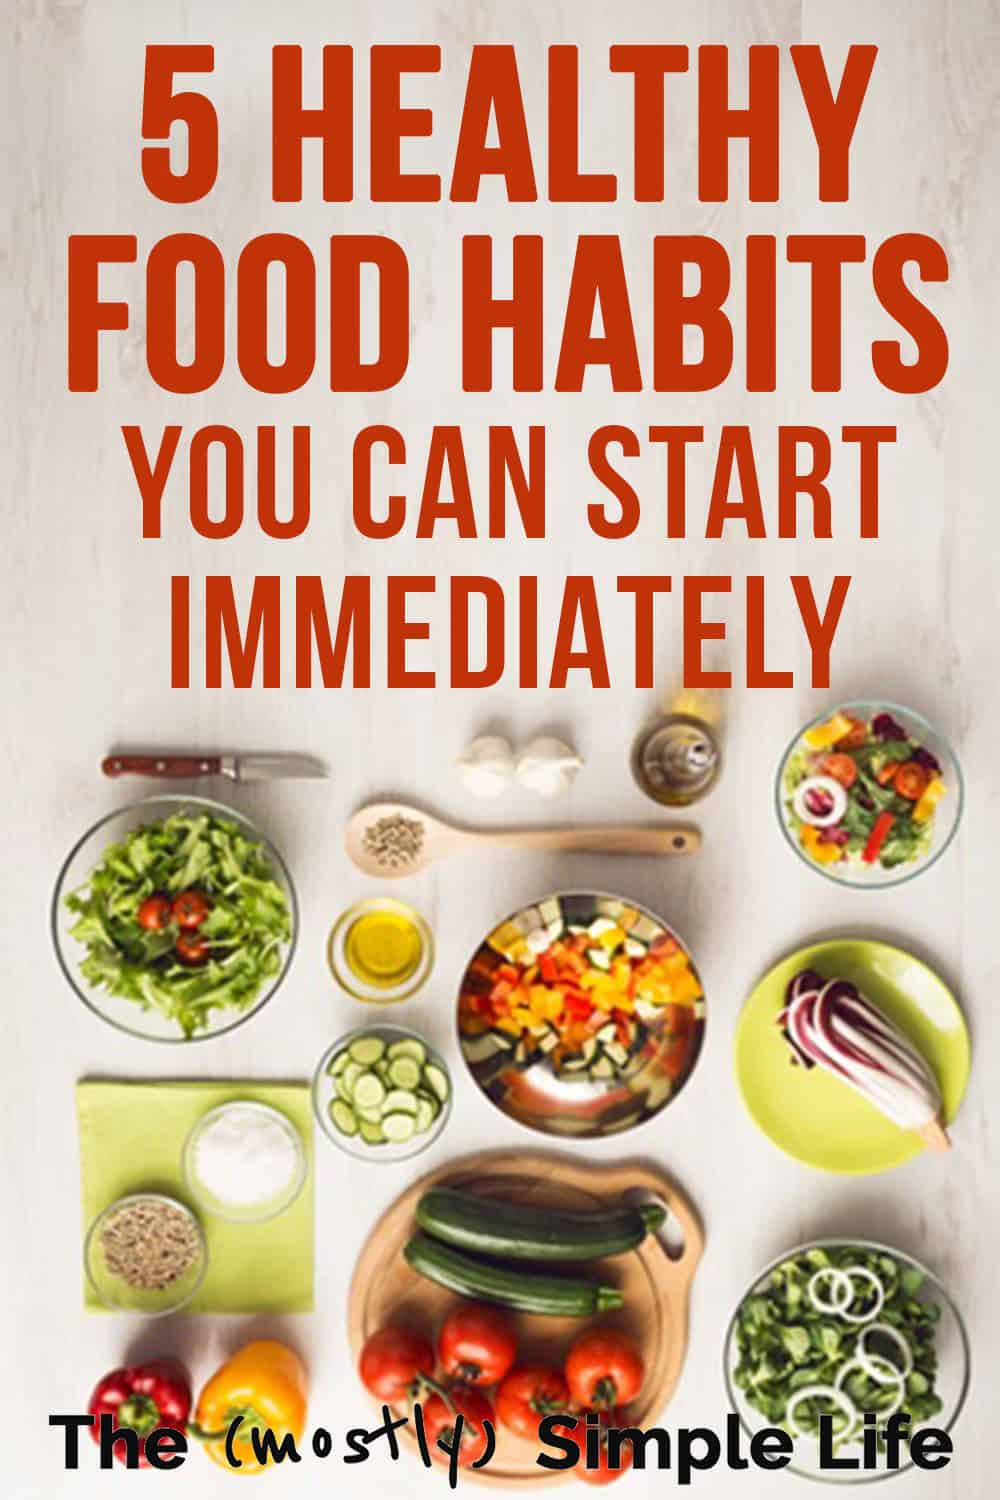 5 Healthy Food Habits You Can Start Adopting Immediately